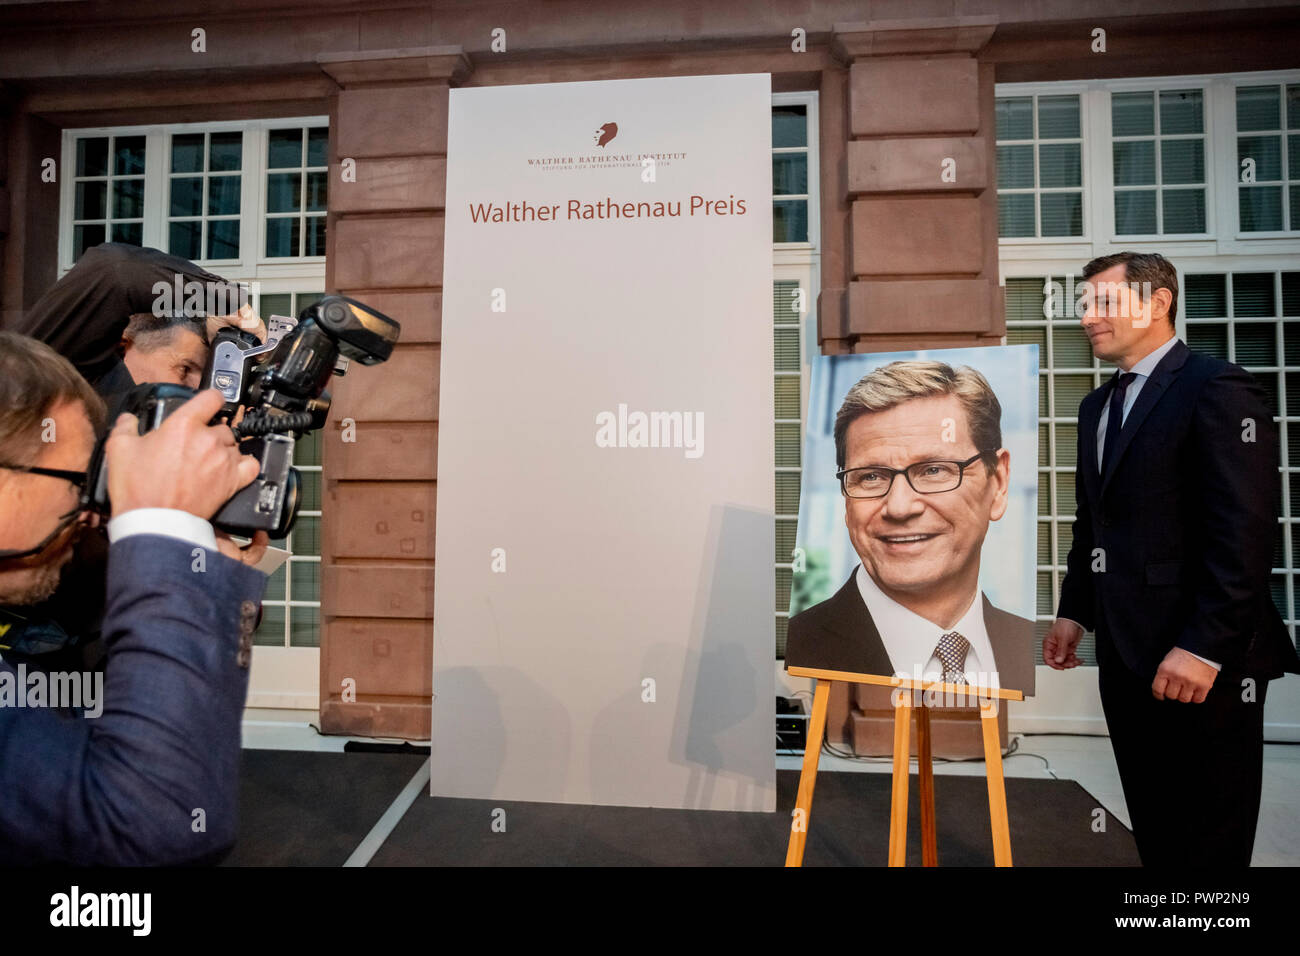 Berlin, Germany. 17th Oct, 2018. 17 October 2018, Germany, Berlin: Michael Mronz, life partner of the late Guido Westerwelle, stands for photographers at the posthumous presentation of the Rathenau Prize 2018 next to a picture by Guido Westerwelle. Westerwelle is posthumously honoured by the Walther Rathenau Institute, Foundation for International Politics, 'for his work in the sense of a peaceful world order based on international understanding'. Credit: Christoph Soeder/dpa/Alamy Live News - Stock Image